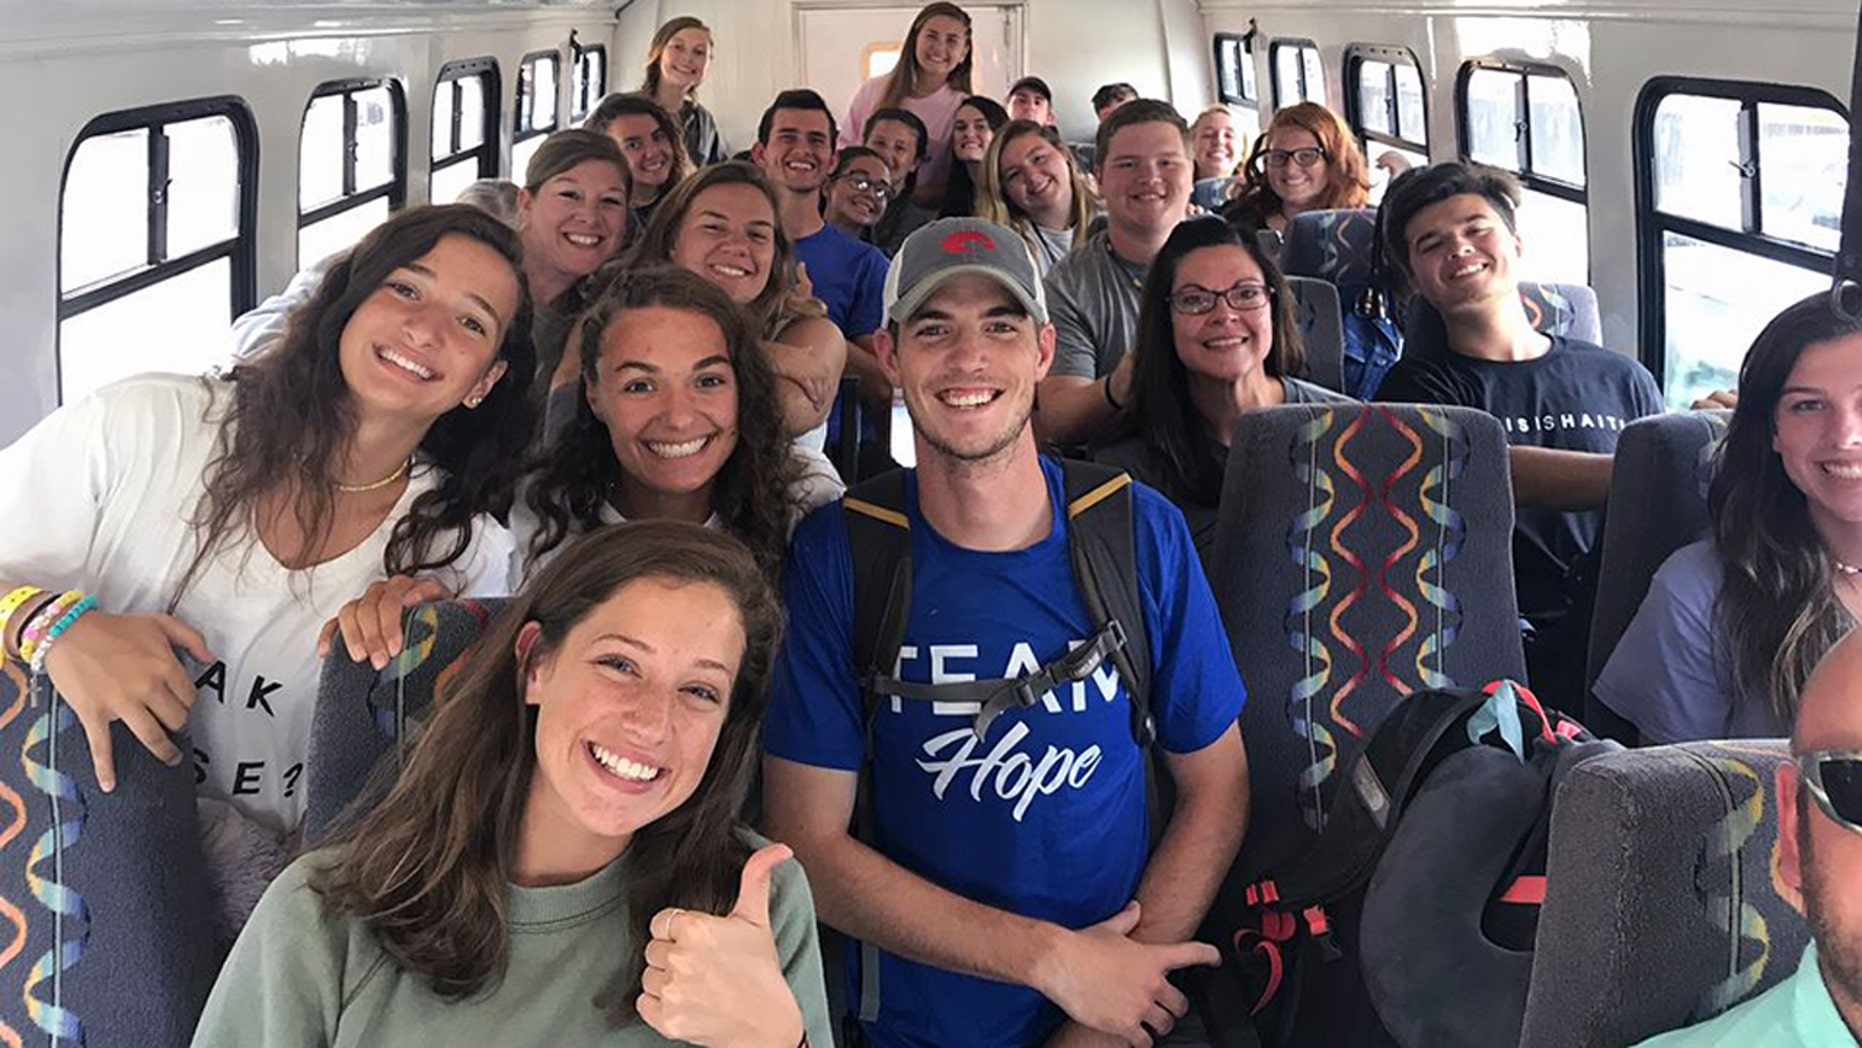 The mission team from Faith Community Fellowship in Trussville, Ala., returned from Haiti on Tuesday.